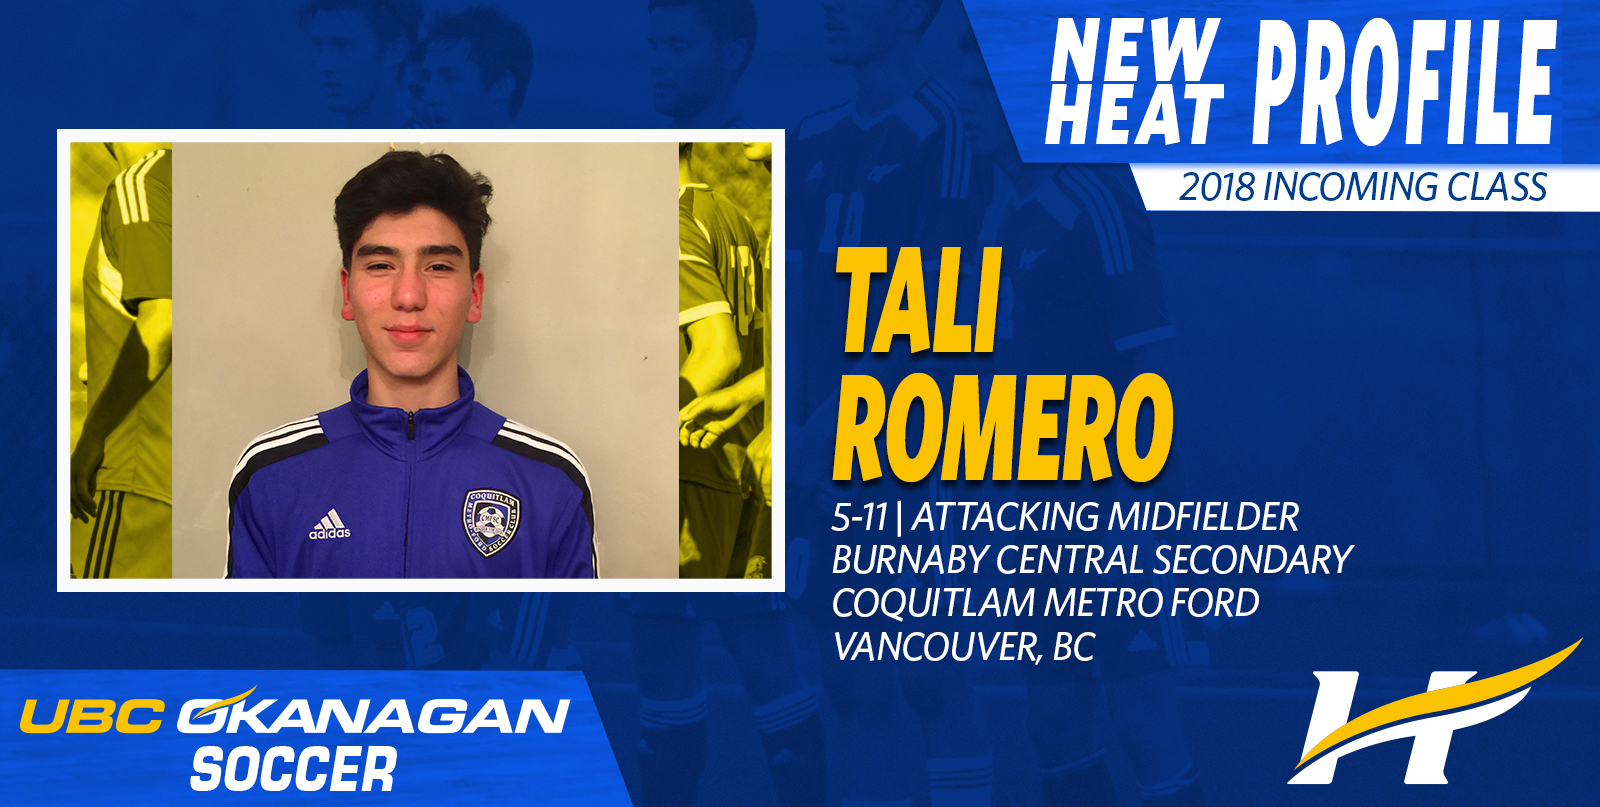 Romero to attack for UBC Okanagan this fall